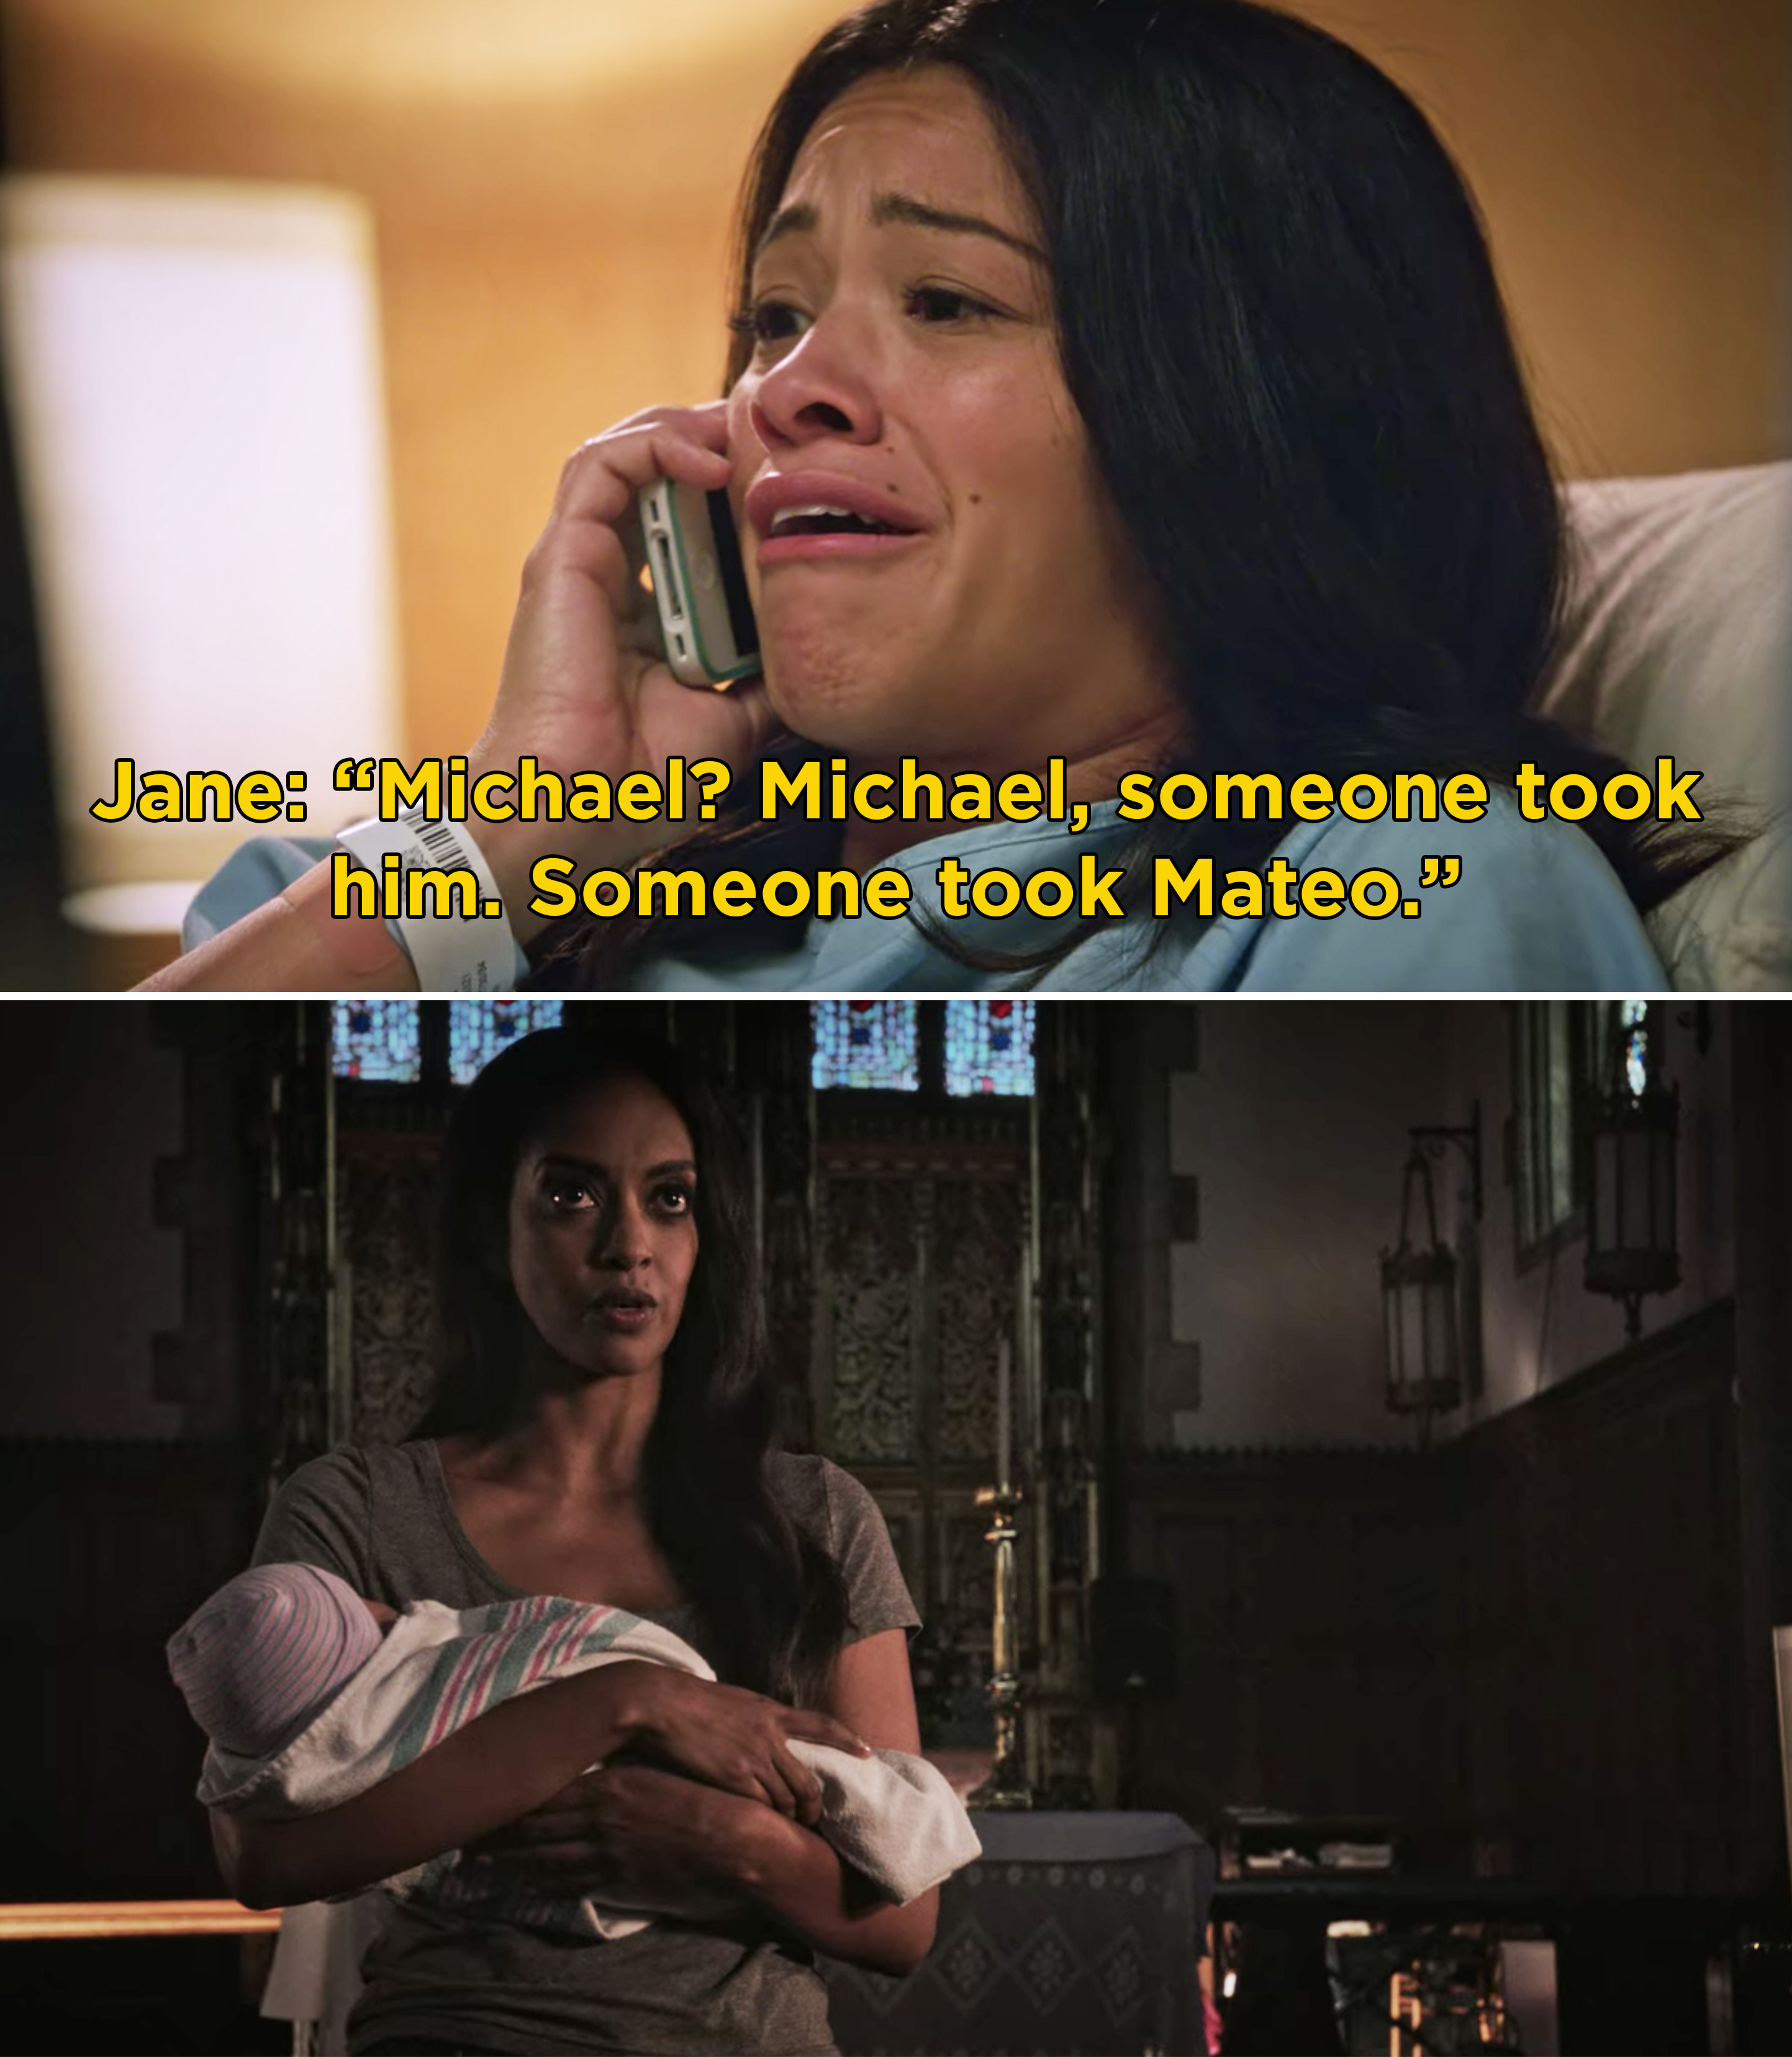 """Jane on the phone with Michael saying, """"Michael? Michael, someone took him. Someone took Mateo"""""""